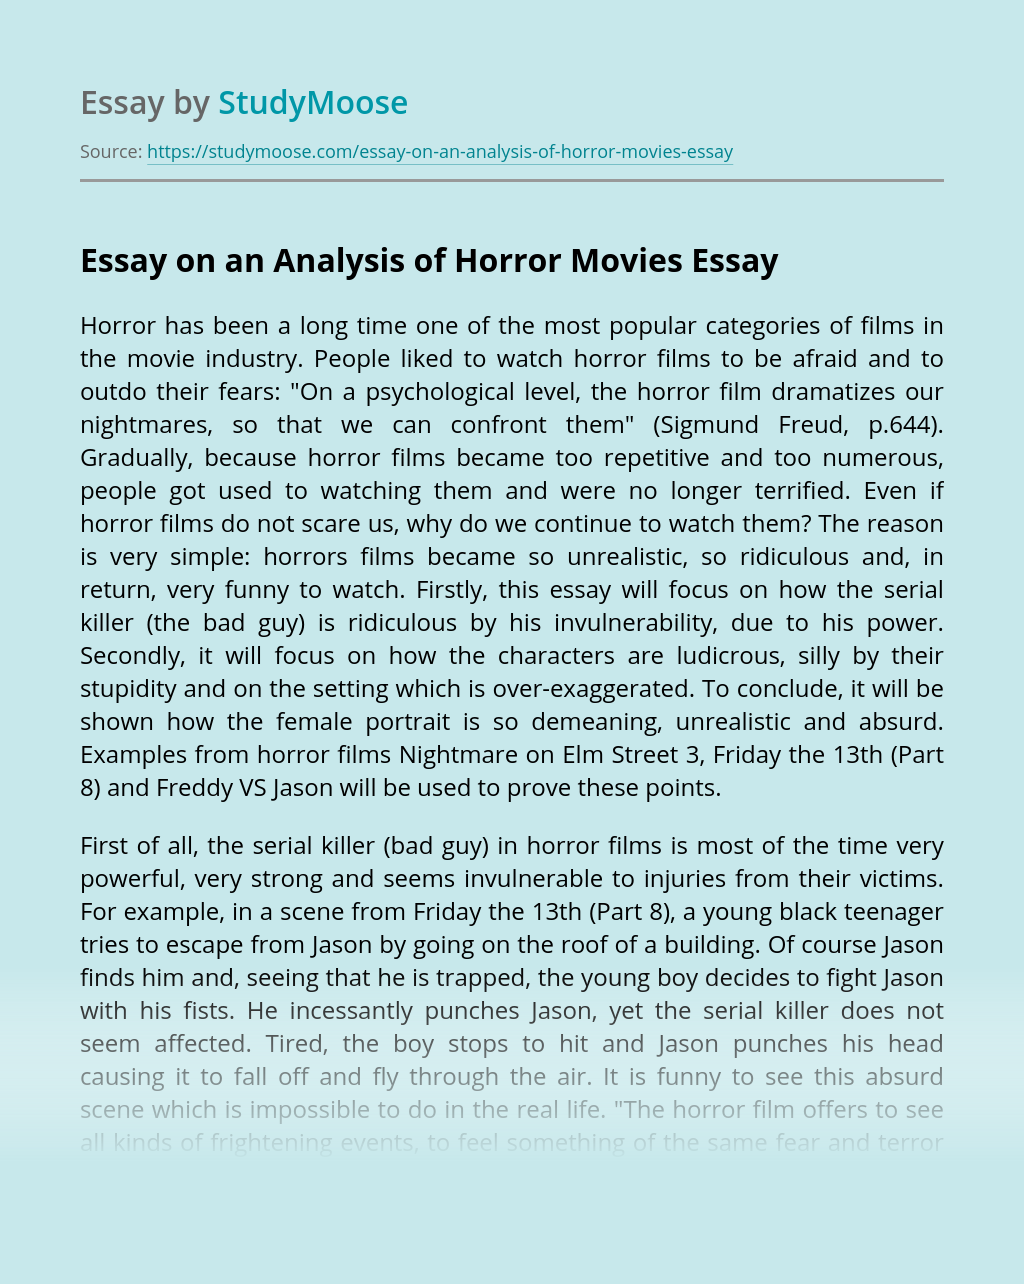 Essay on an Analysis of Horror Movies